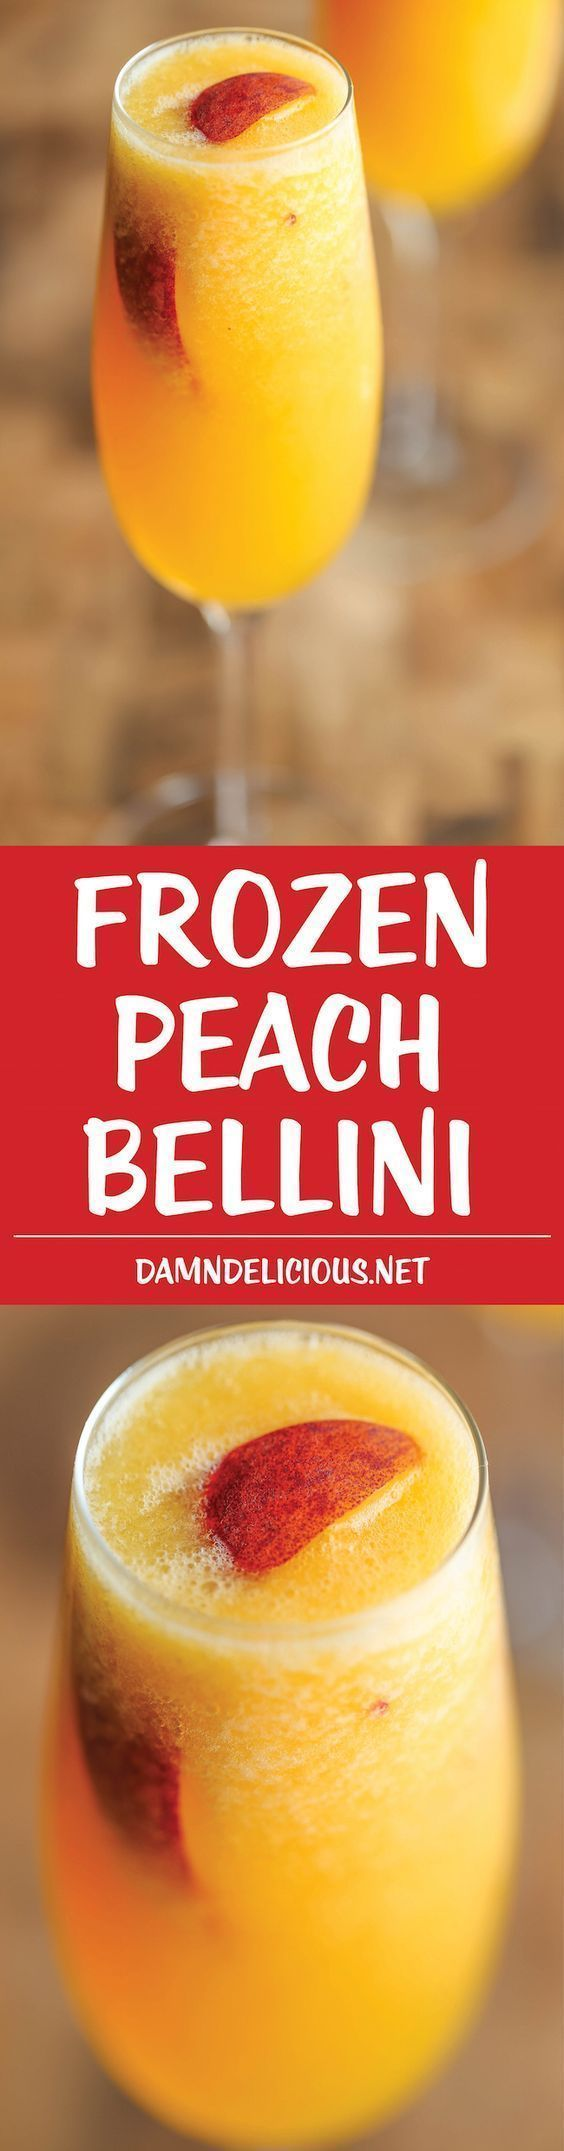 Frozen Peach Bellini - Wonderfully light, refreshing, and bubbly peach bellinis - and all you need is 3 ingredients and 5 minutes! So simple and easy! #summercocktails